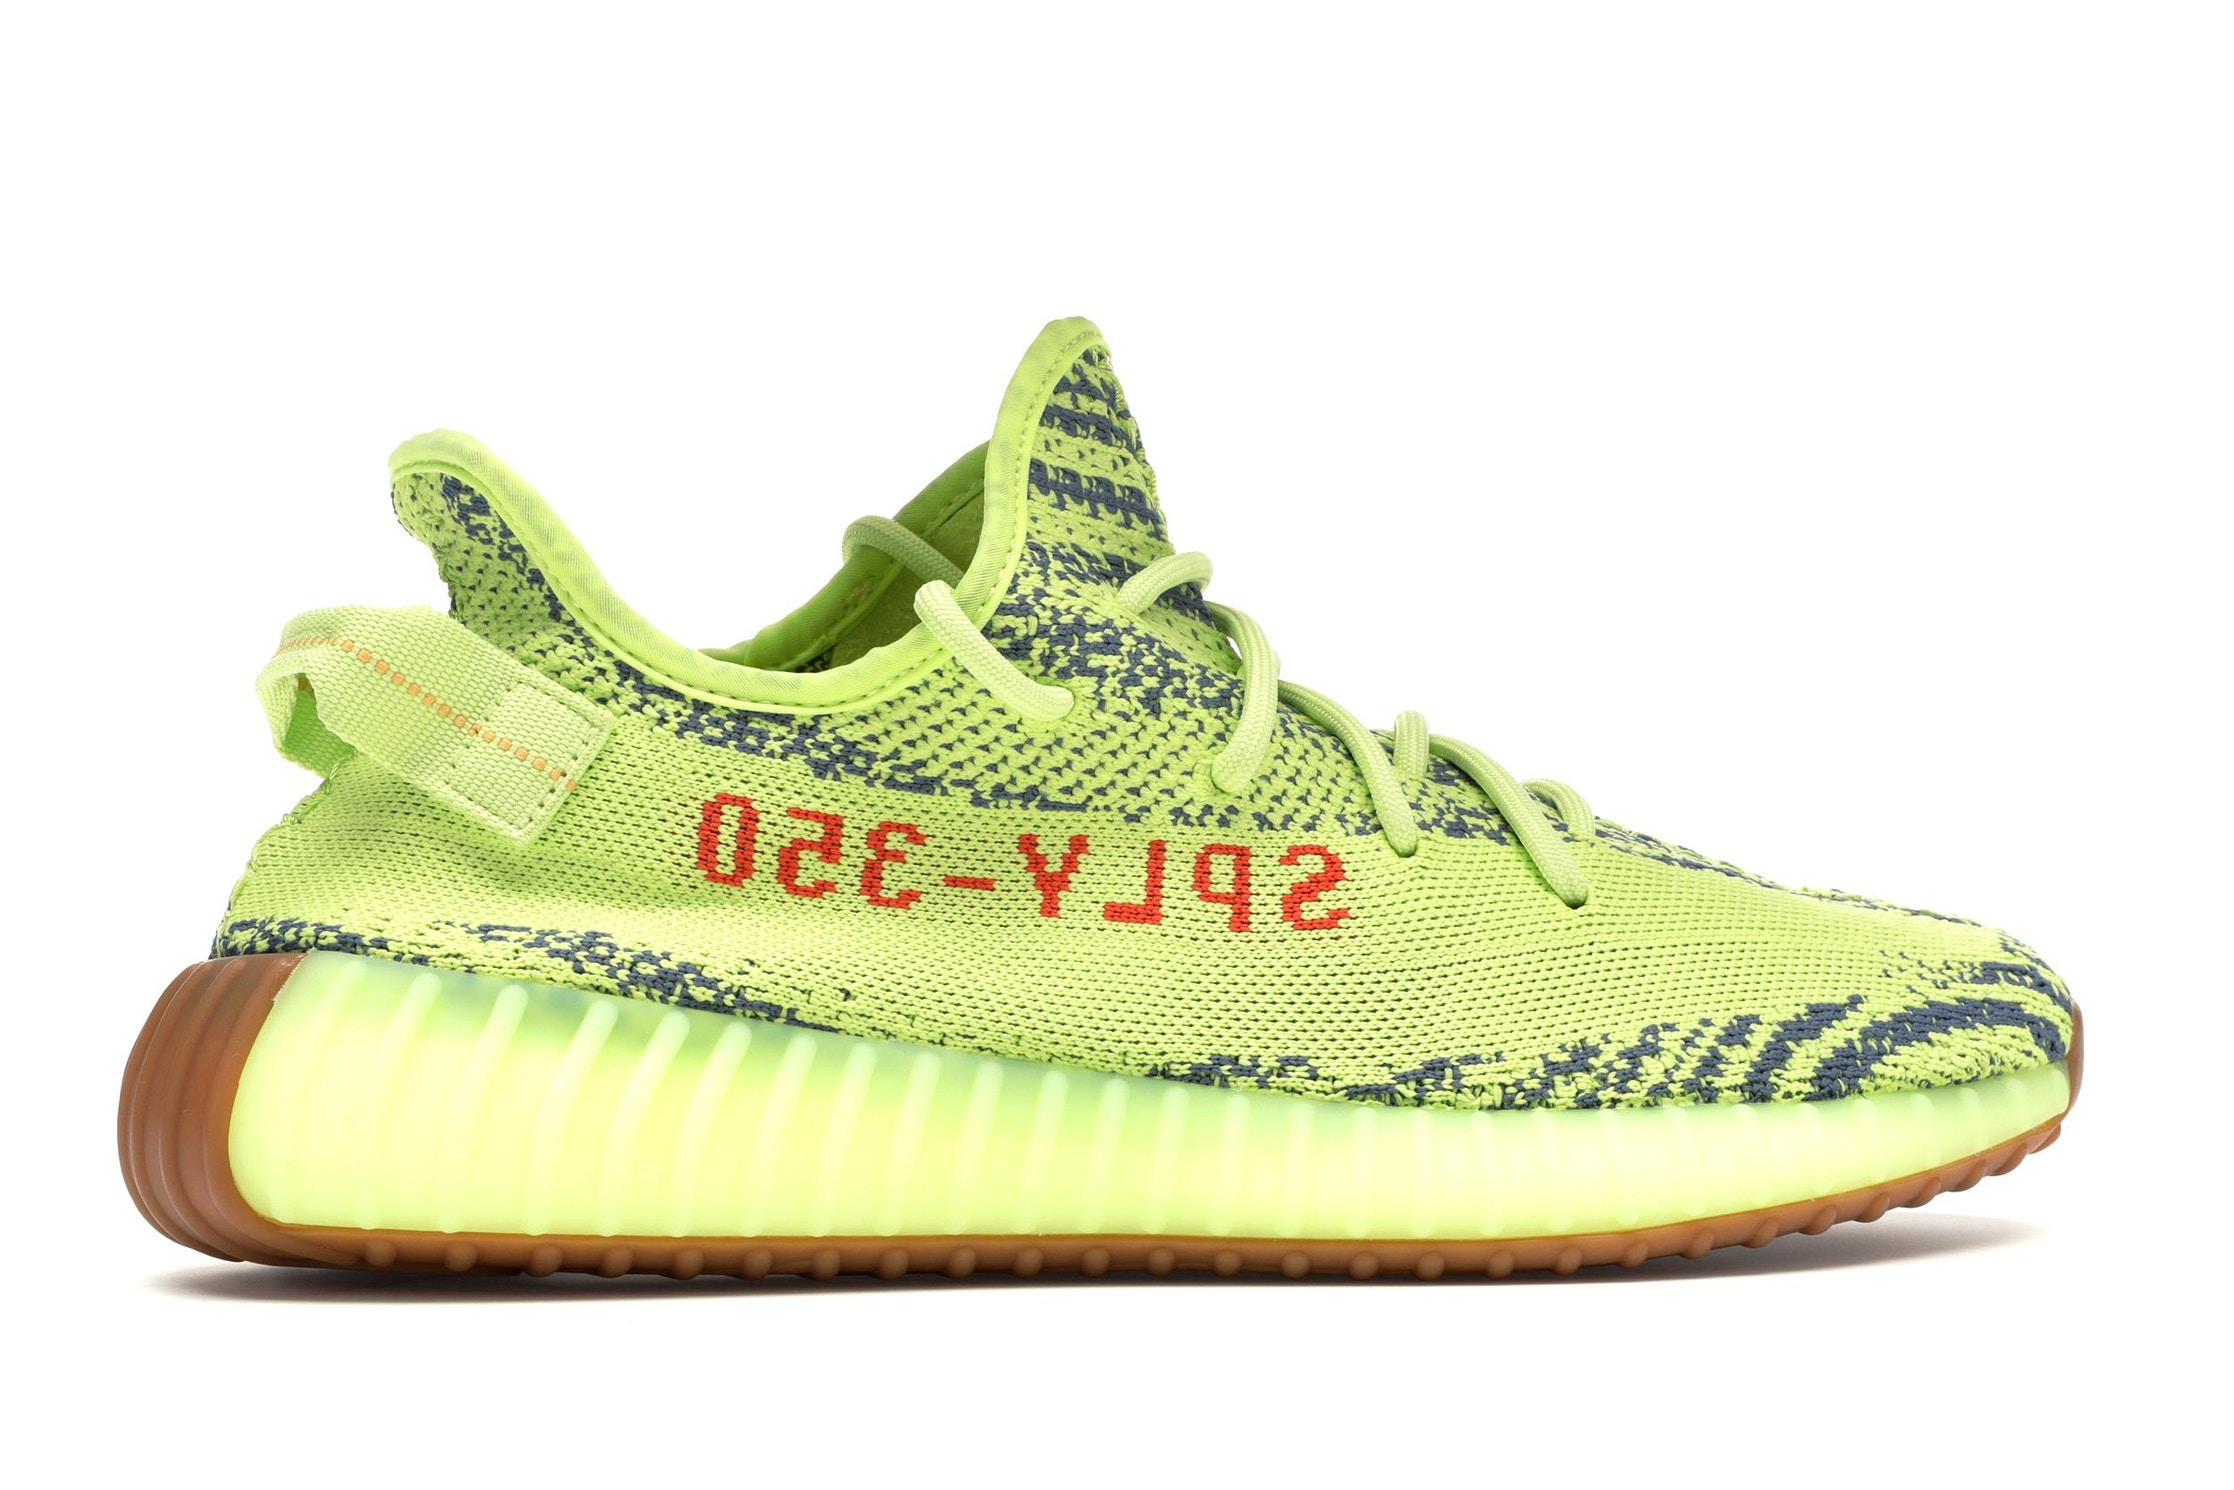 yeezys air 350 boost running shoes for women sneakers